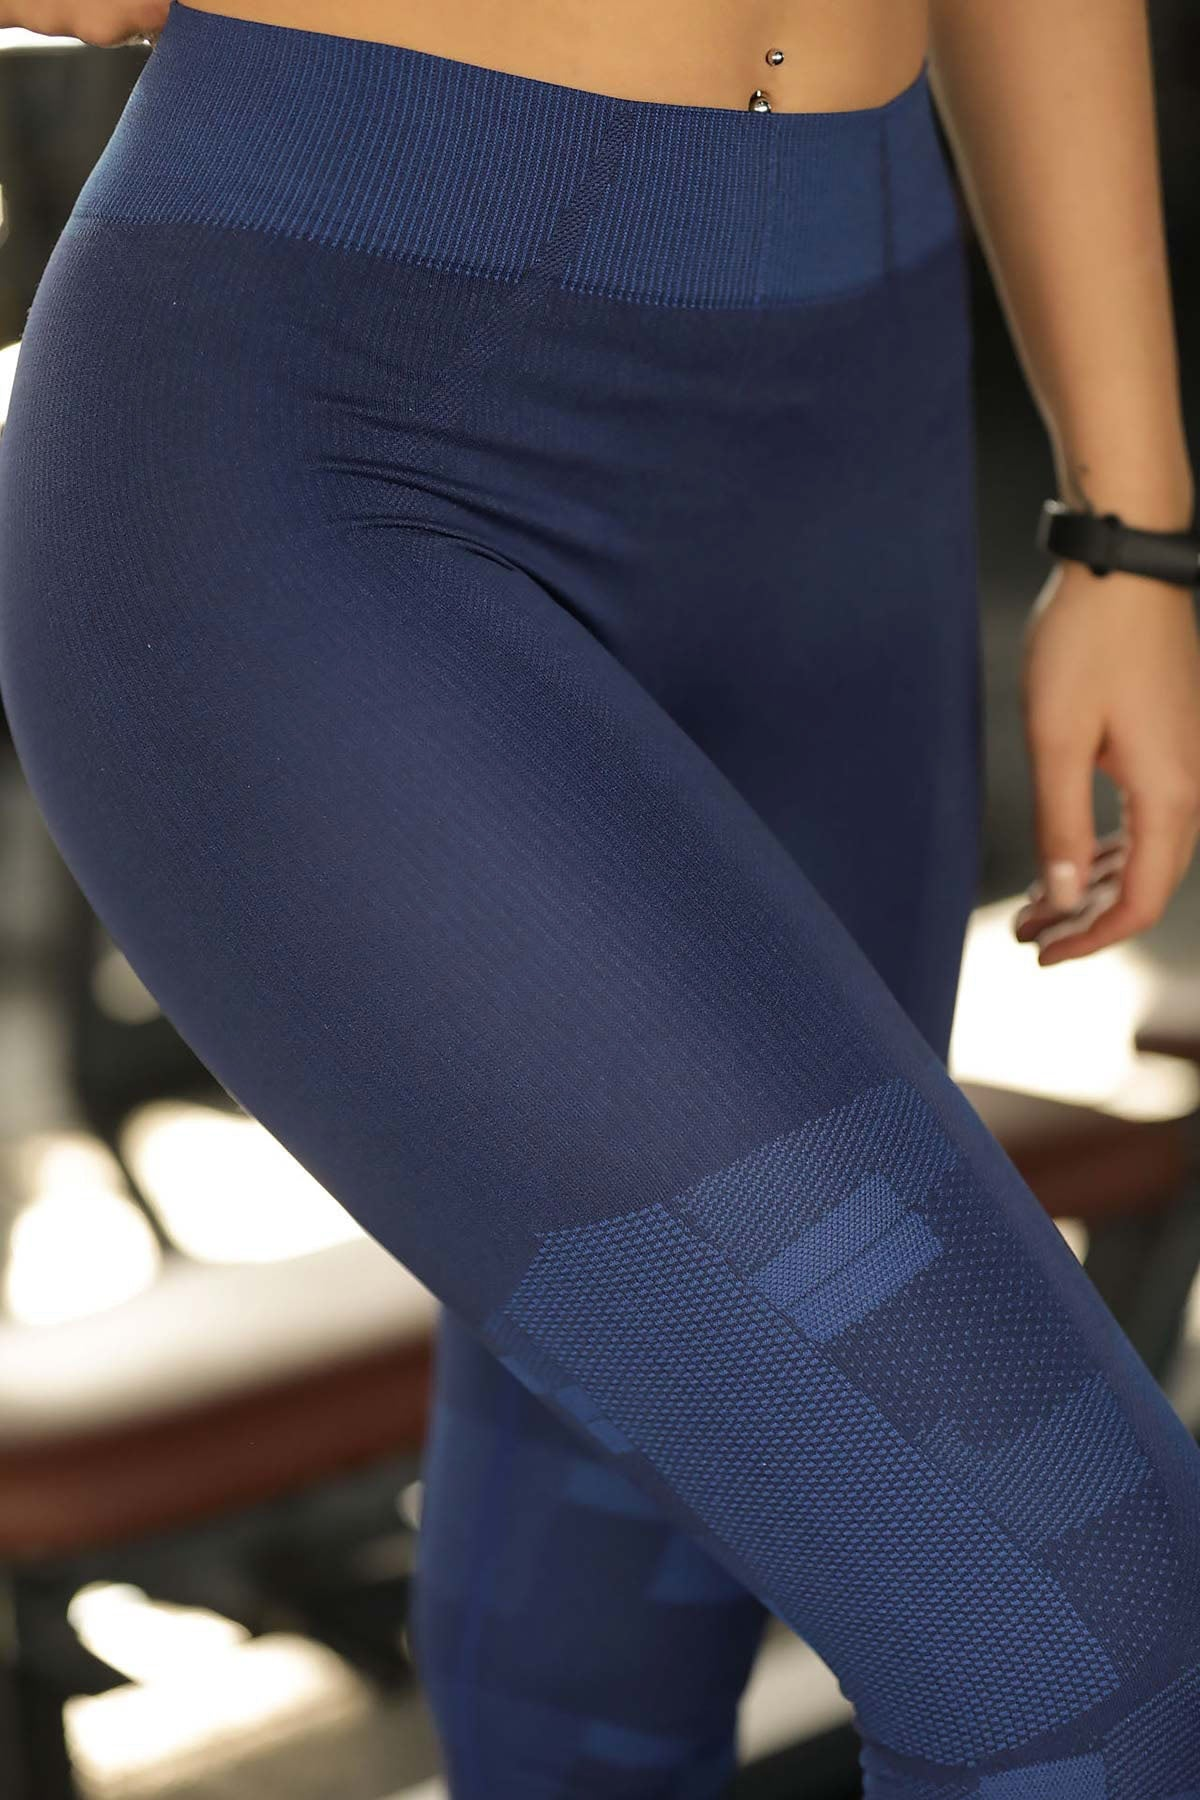 Women's Navy Blue Tights